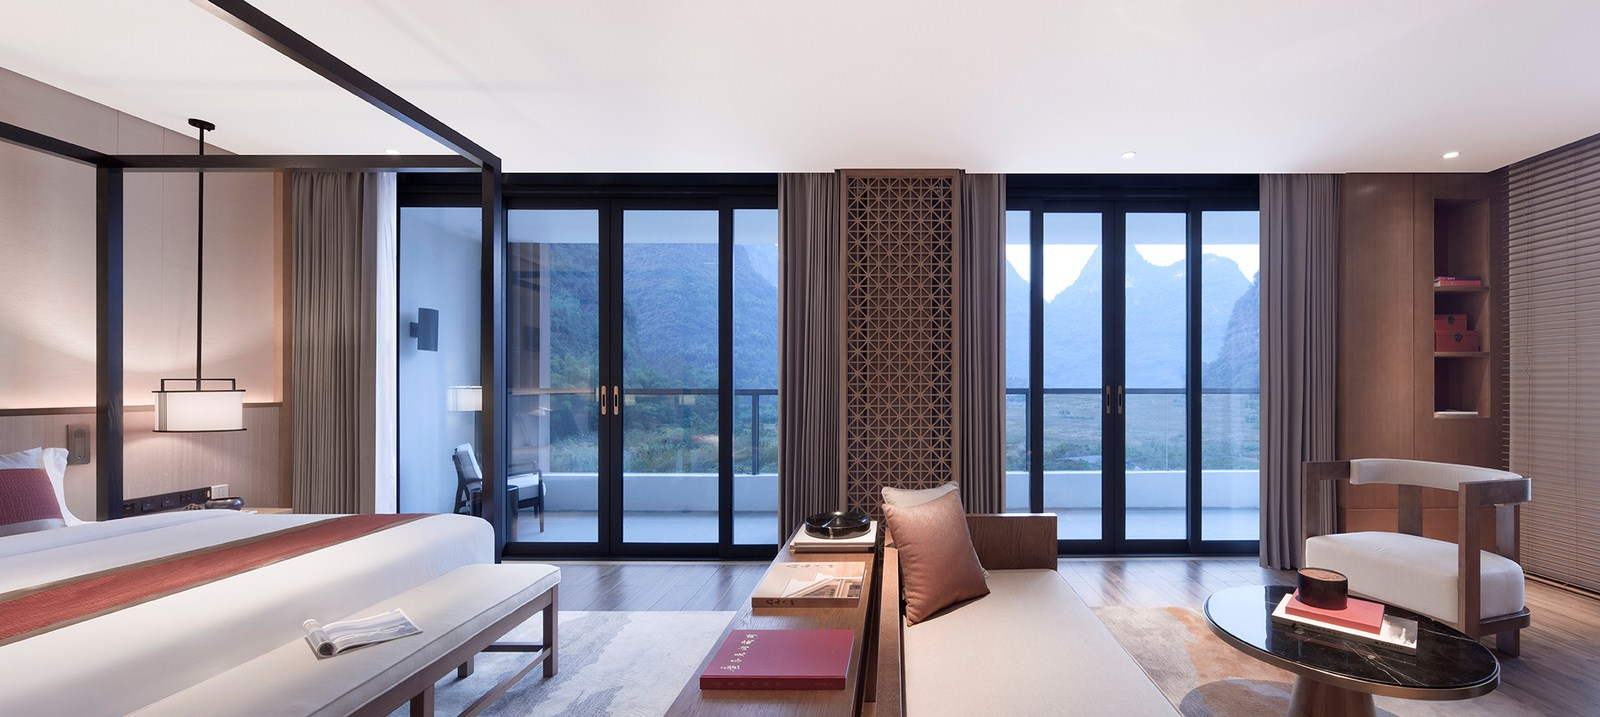 Blossom Dreams Hotel (Jima) By Co-Direction Design - Sheet34